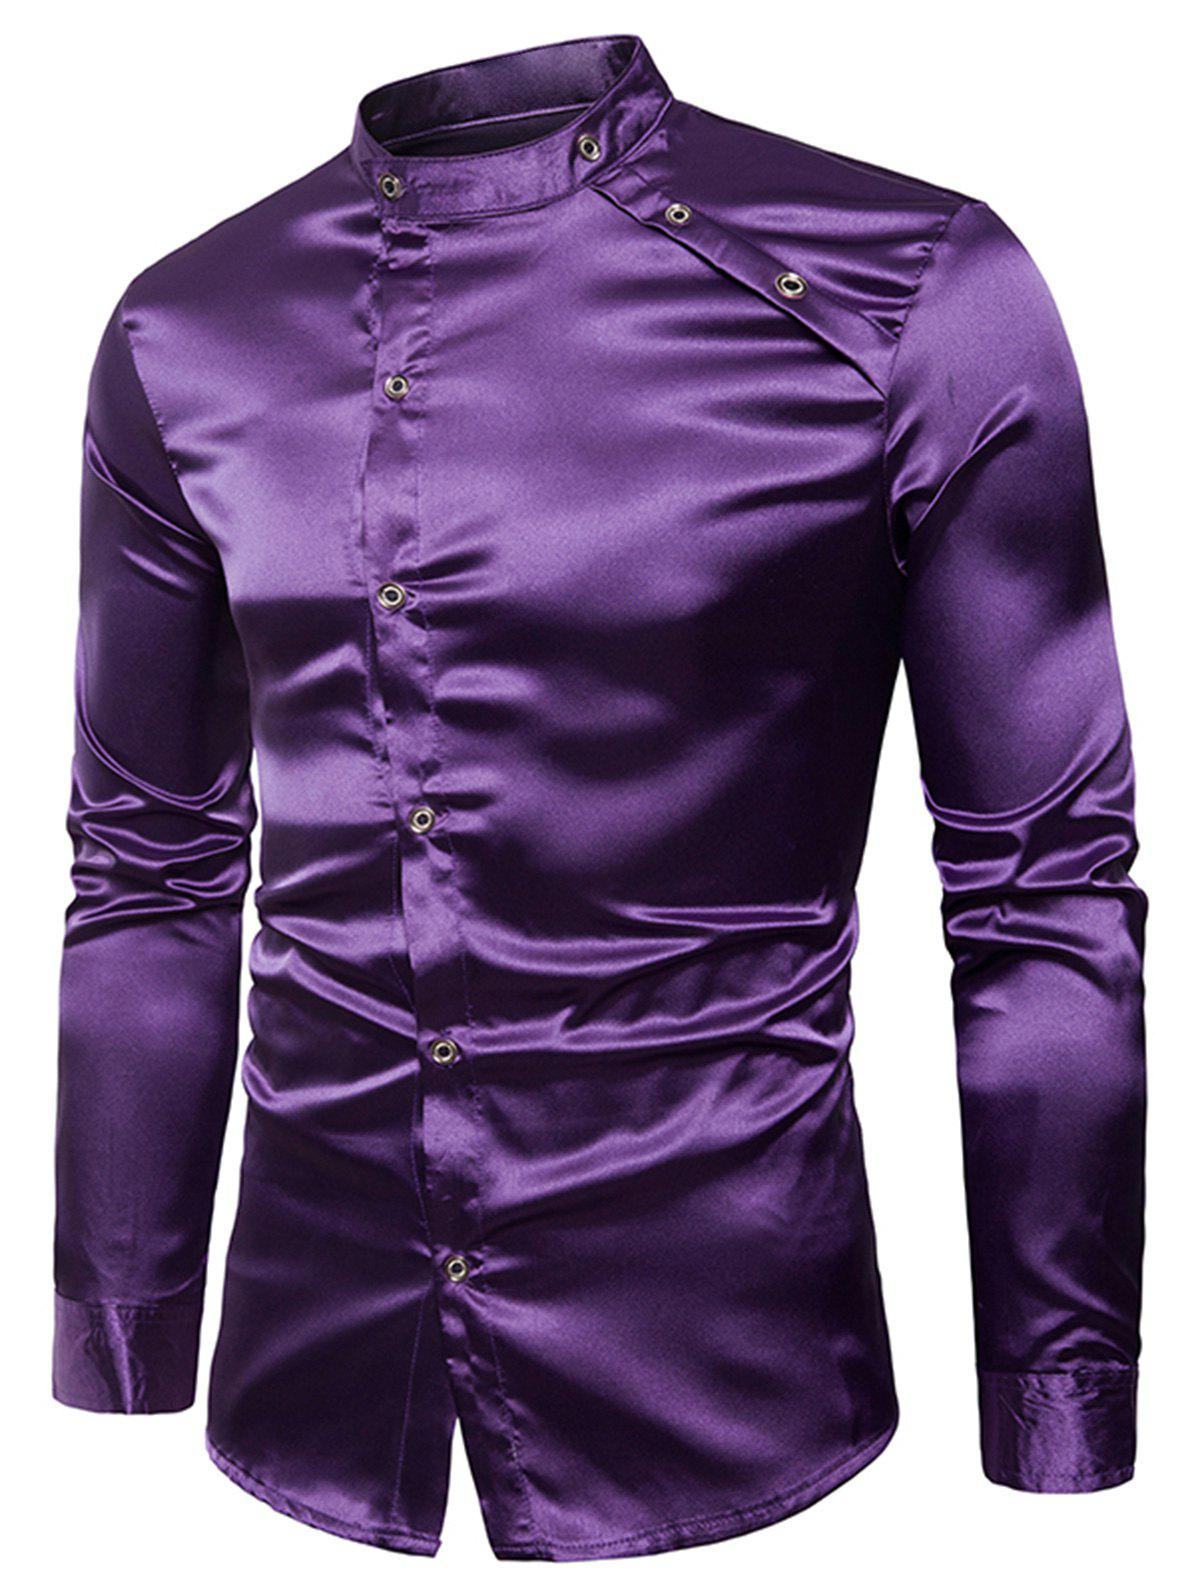 Long Sleeve Bright Buttons Panel Shirt - PURPLE L